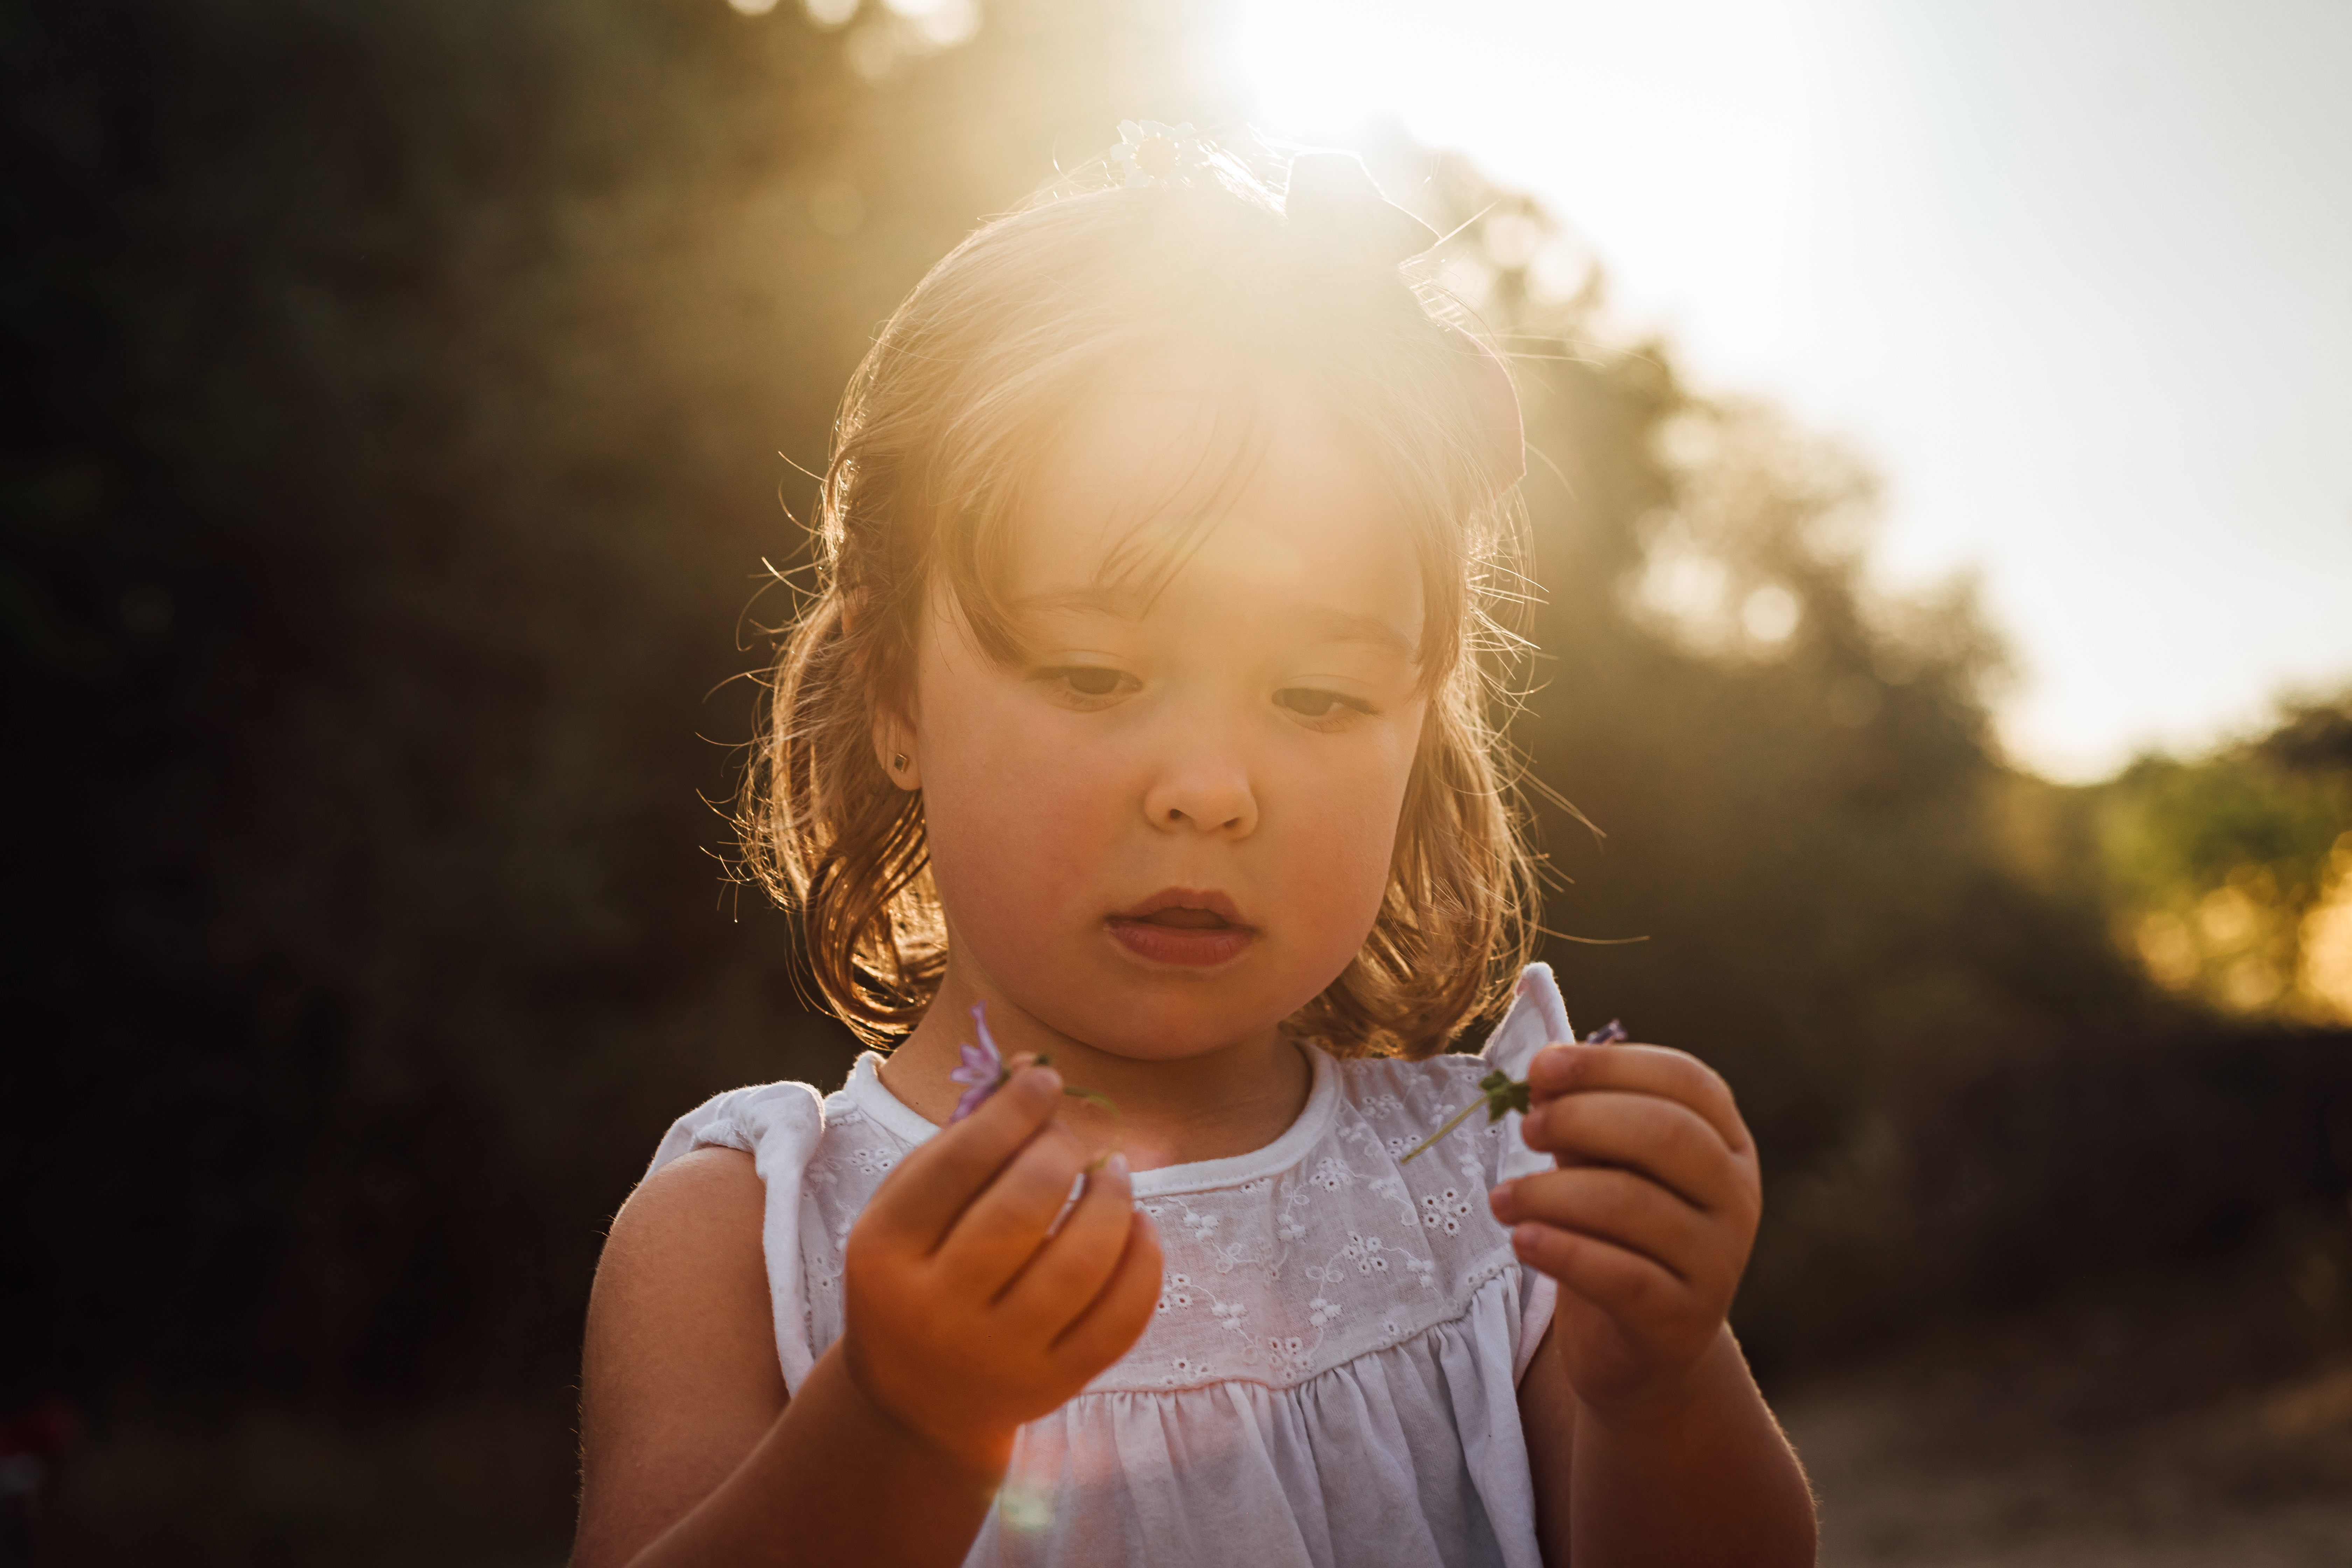 Portrait of a little girl picking a flower with the sun in the background